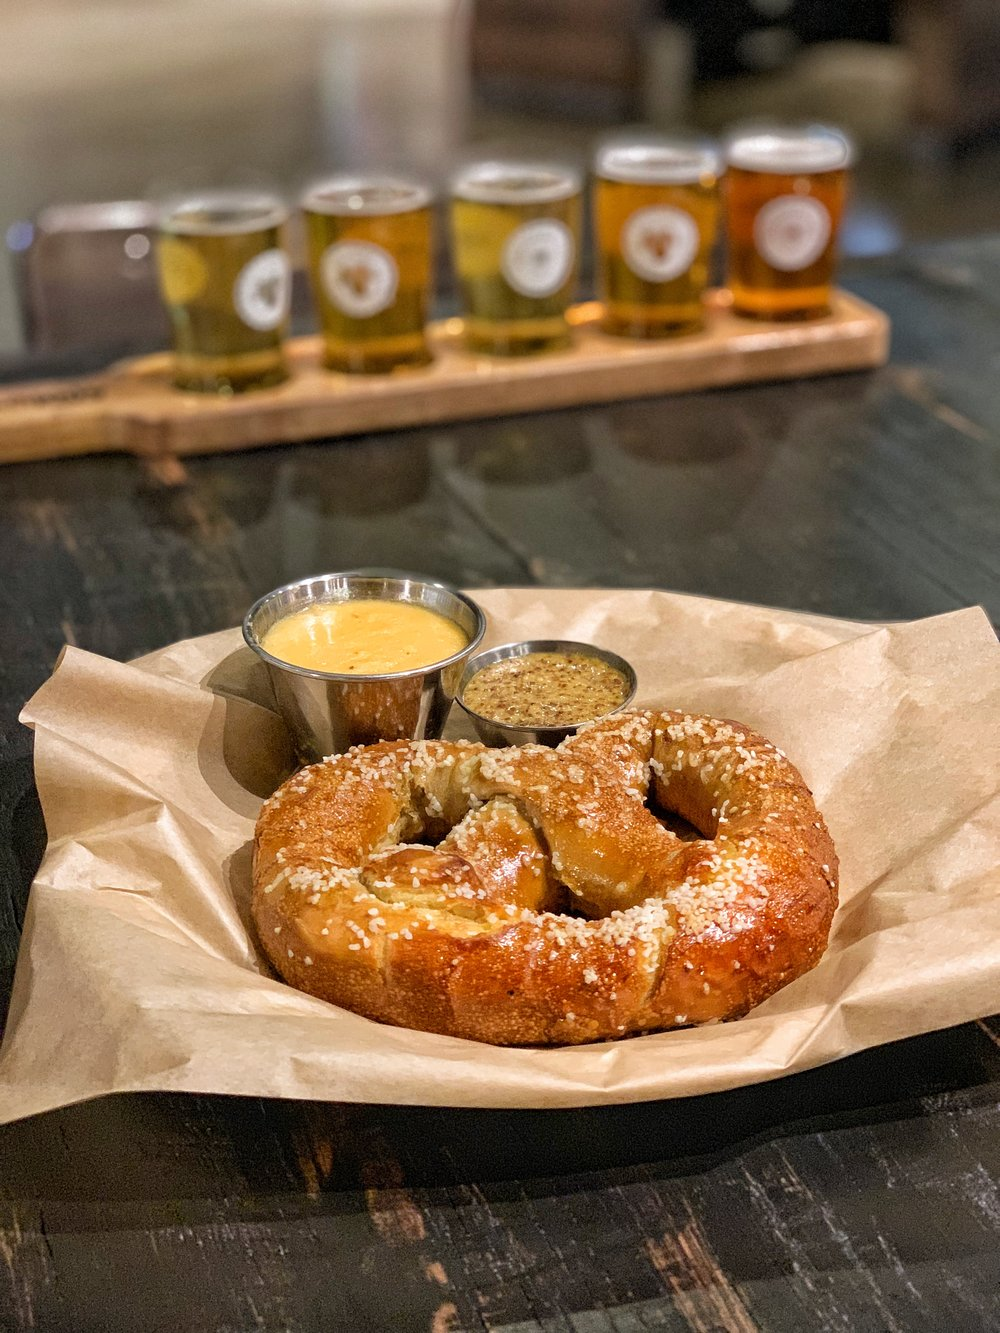 "Victory Pretzel - Seriously one of the best pretzels that you'll find around Charlotte. This is paired with a Hop Devil mustard and a Prima Pils cheese sauce. As their names suggest, they both feature Victory beer in them. The Hop Devil mustard has a nice ""kick"" to it similar to a horseradish(but there is actually no horseradish in it). I love beer cheese so of course I enjoyed it as well."